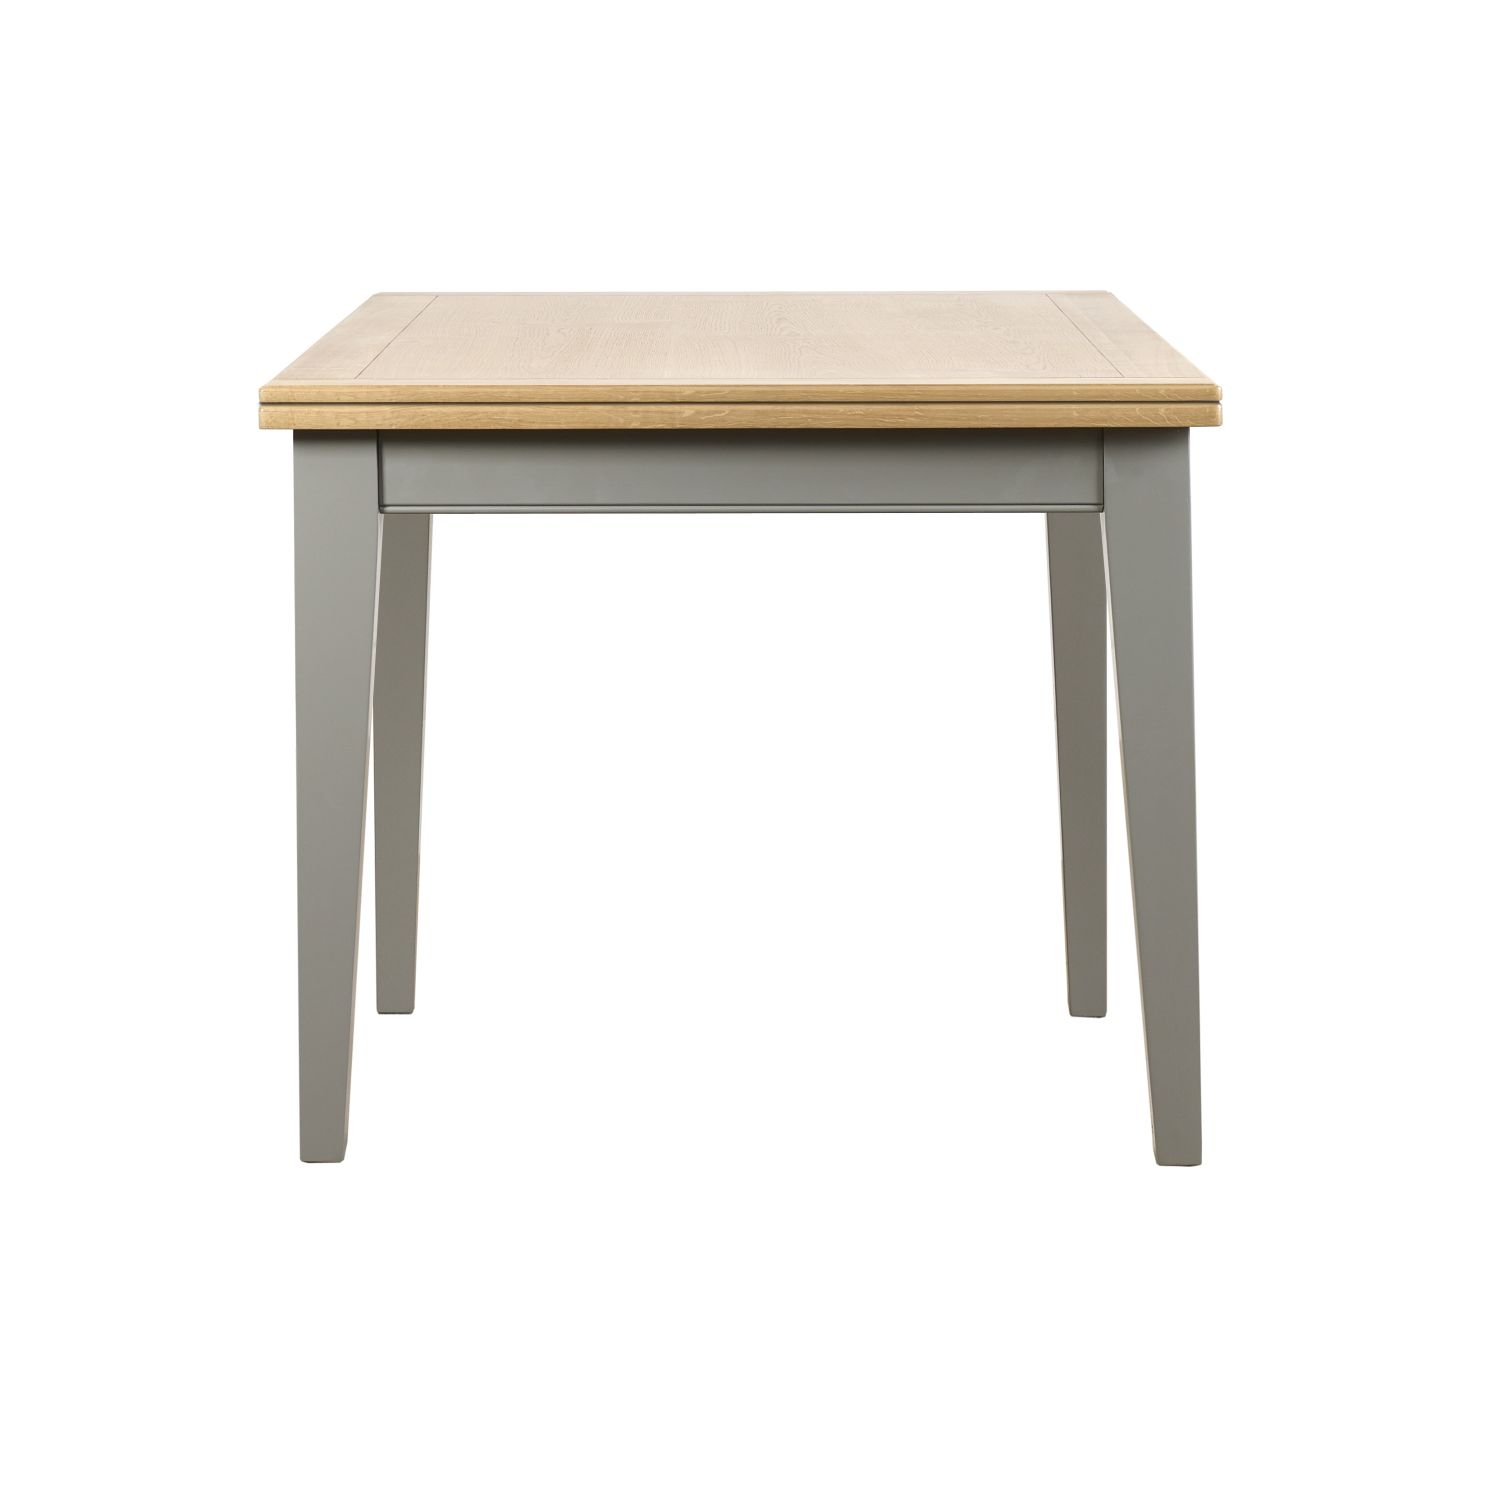 Image of Casa Wexford FlipTop Extending Dining Table